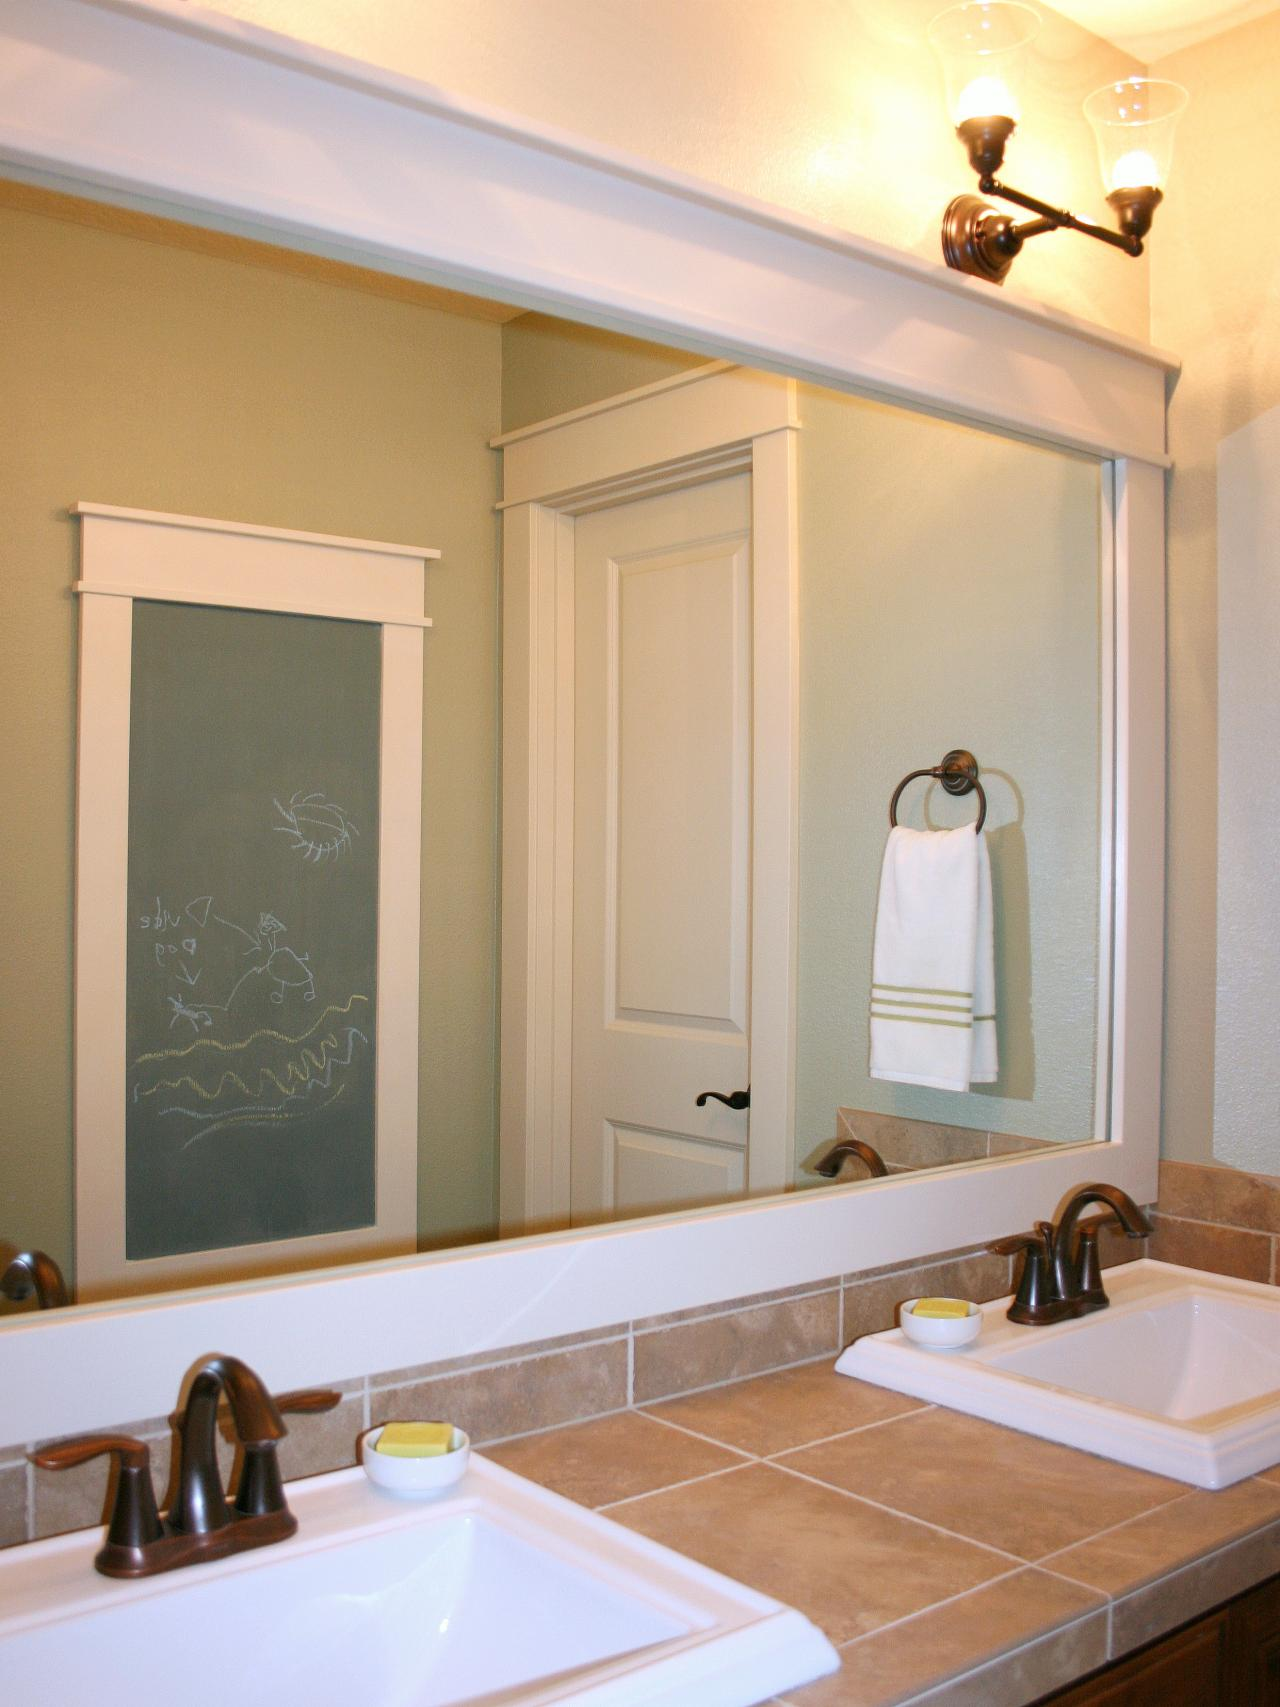 Bathroom mirrors wood frame - How To Frame A Mirror